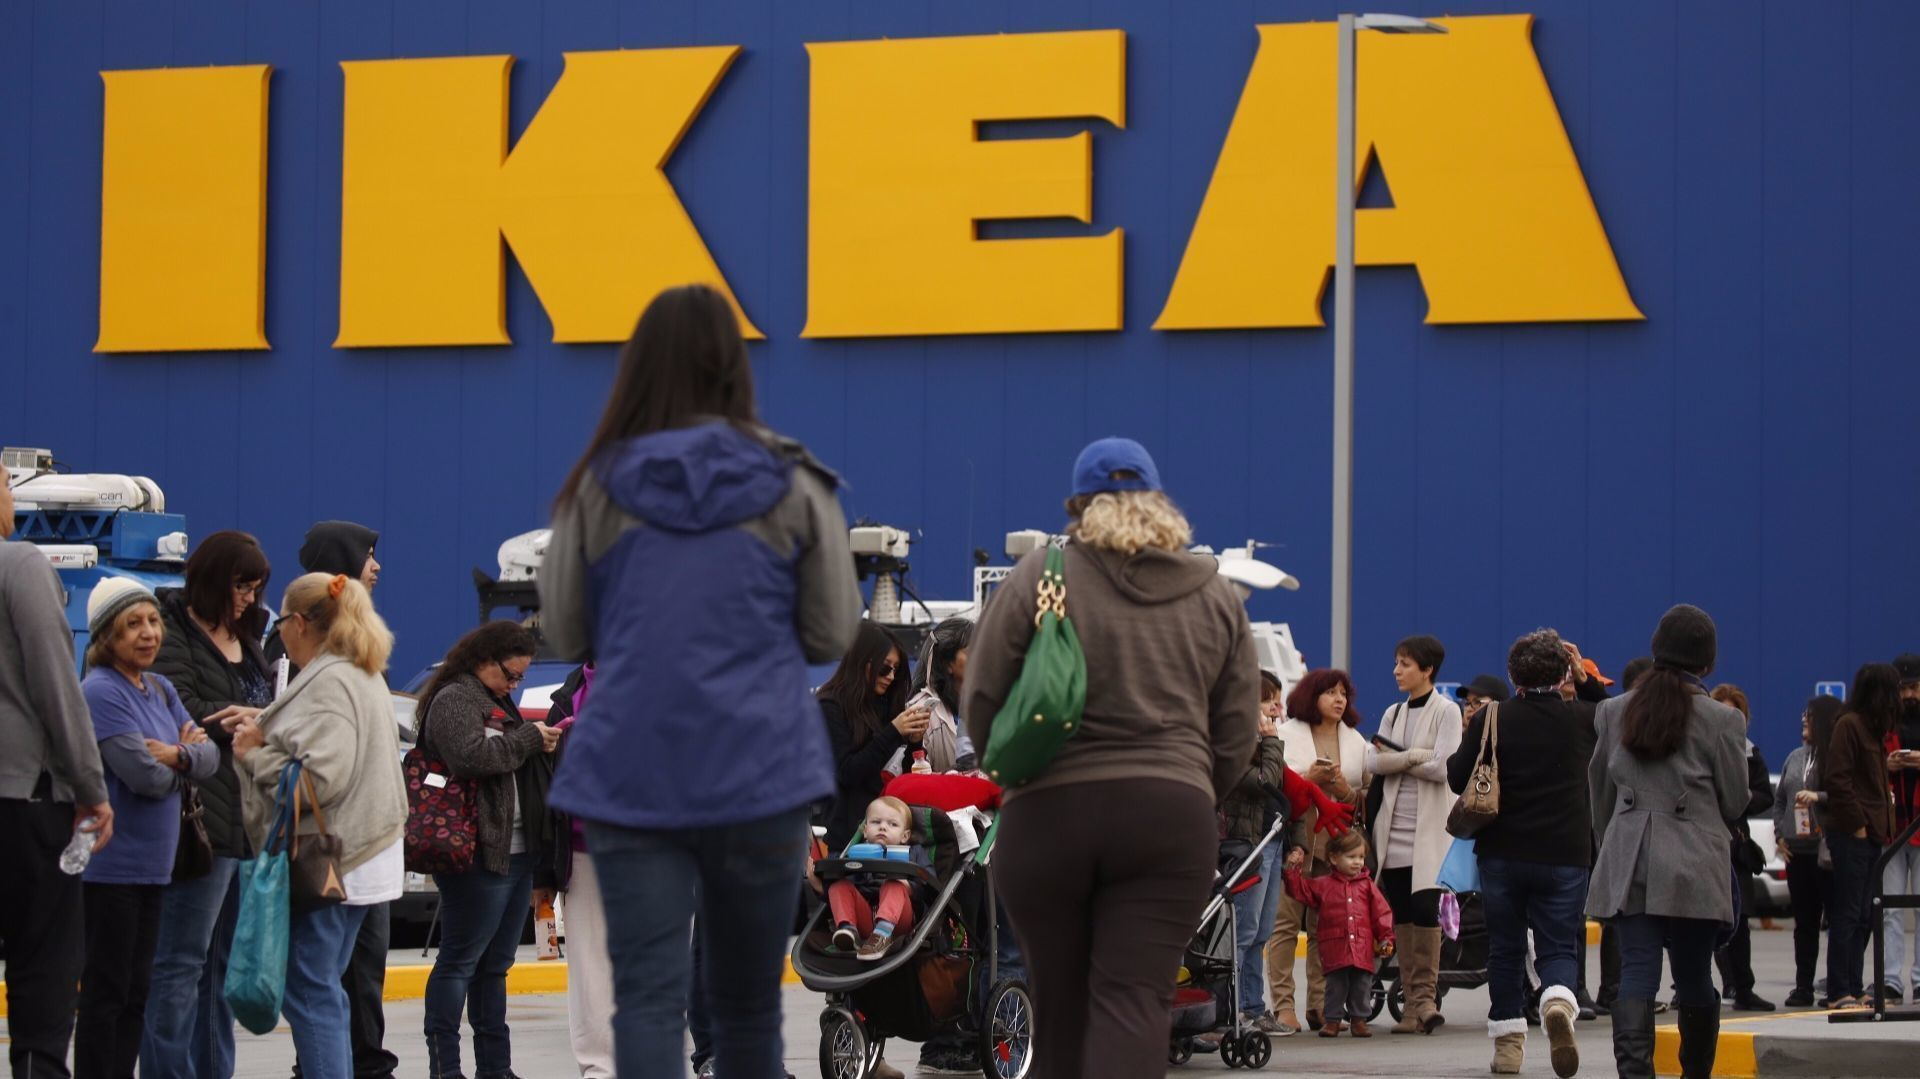 Ikea is buying taskrabbit a platform for hiring someone for Someone to assemble ikea furniture